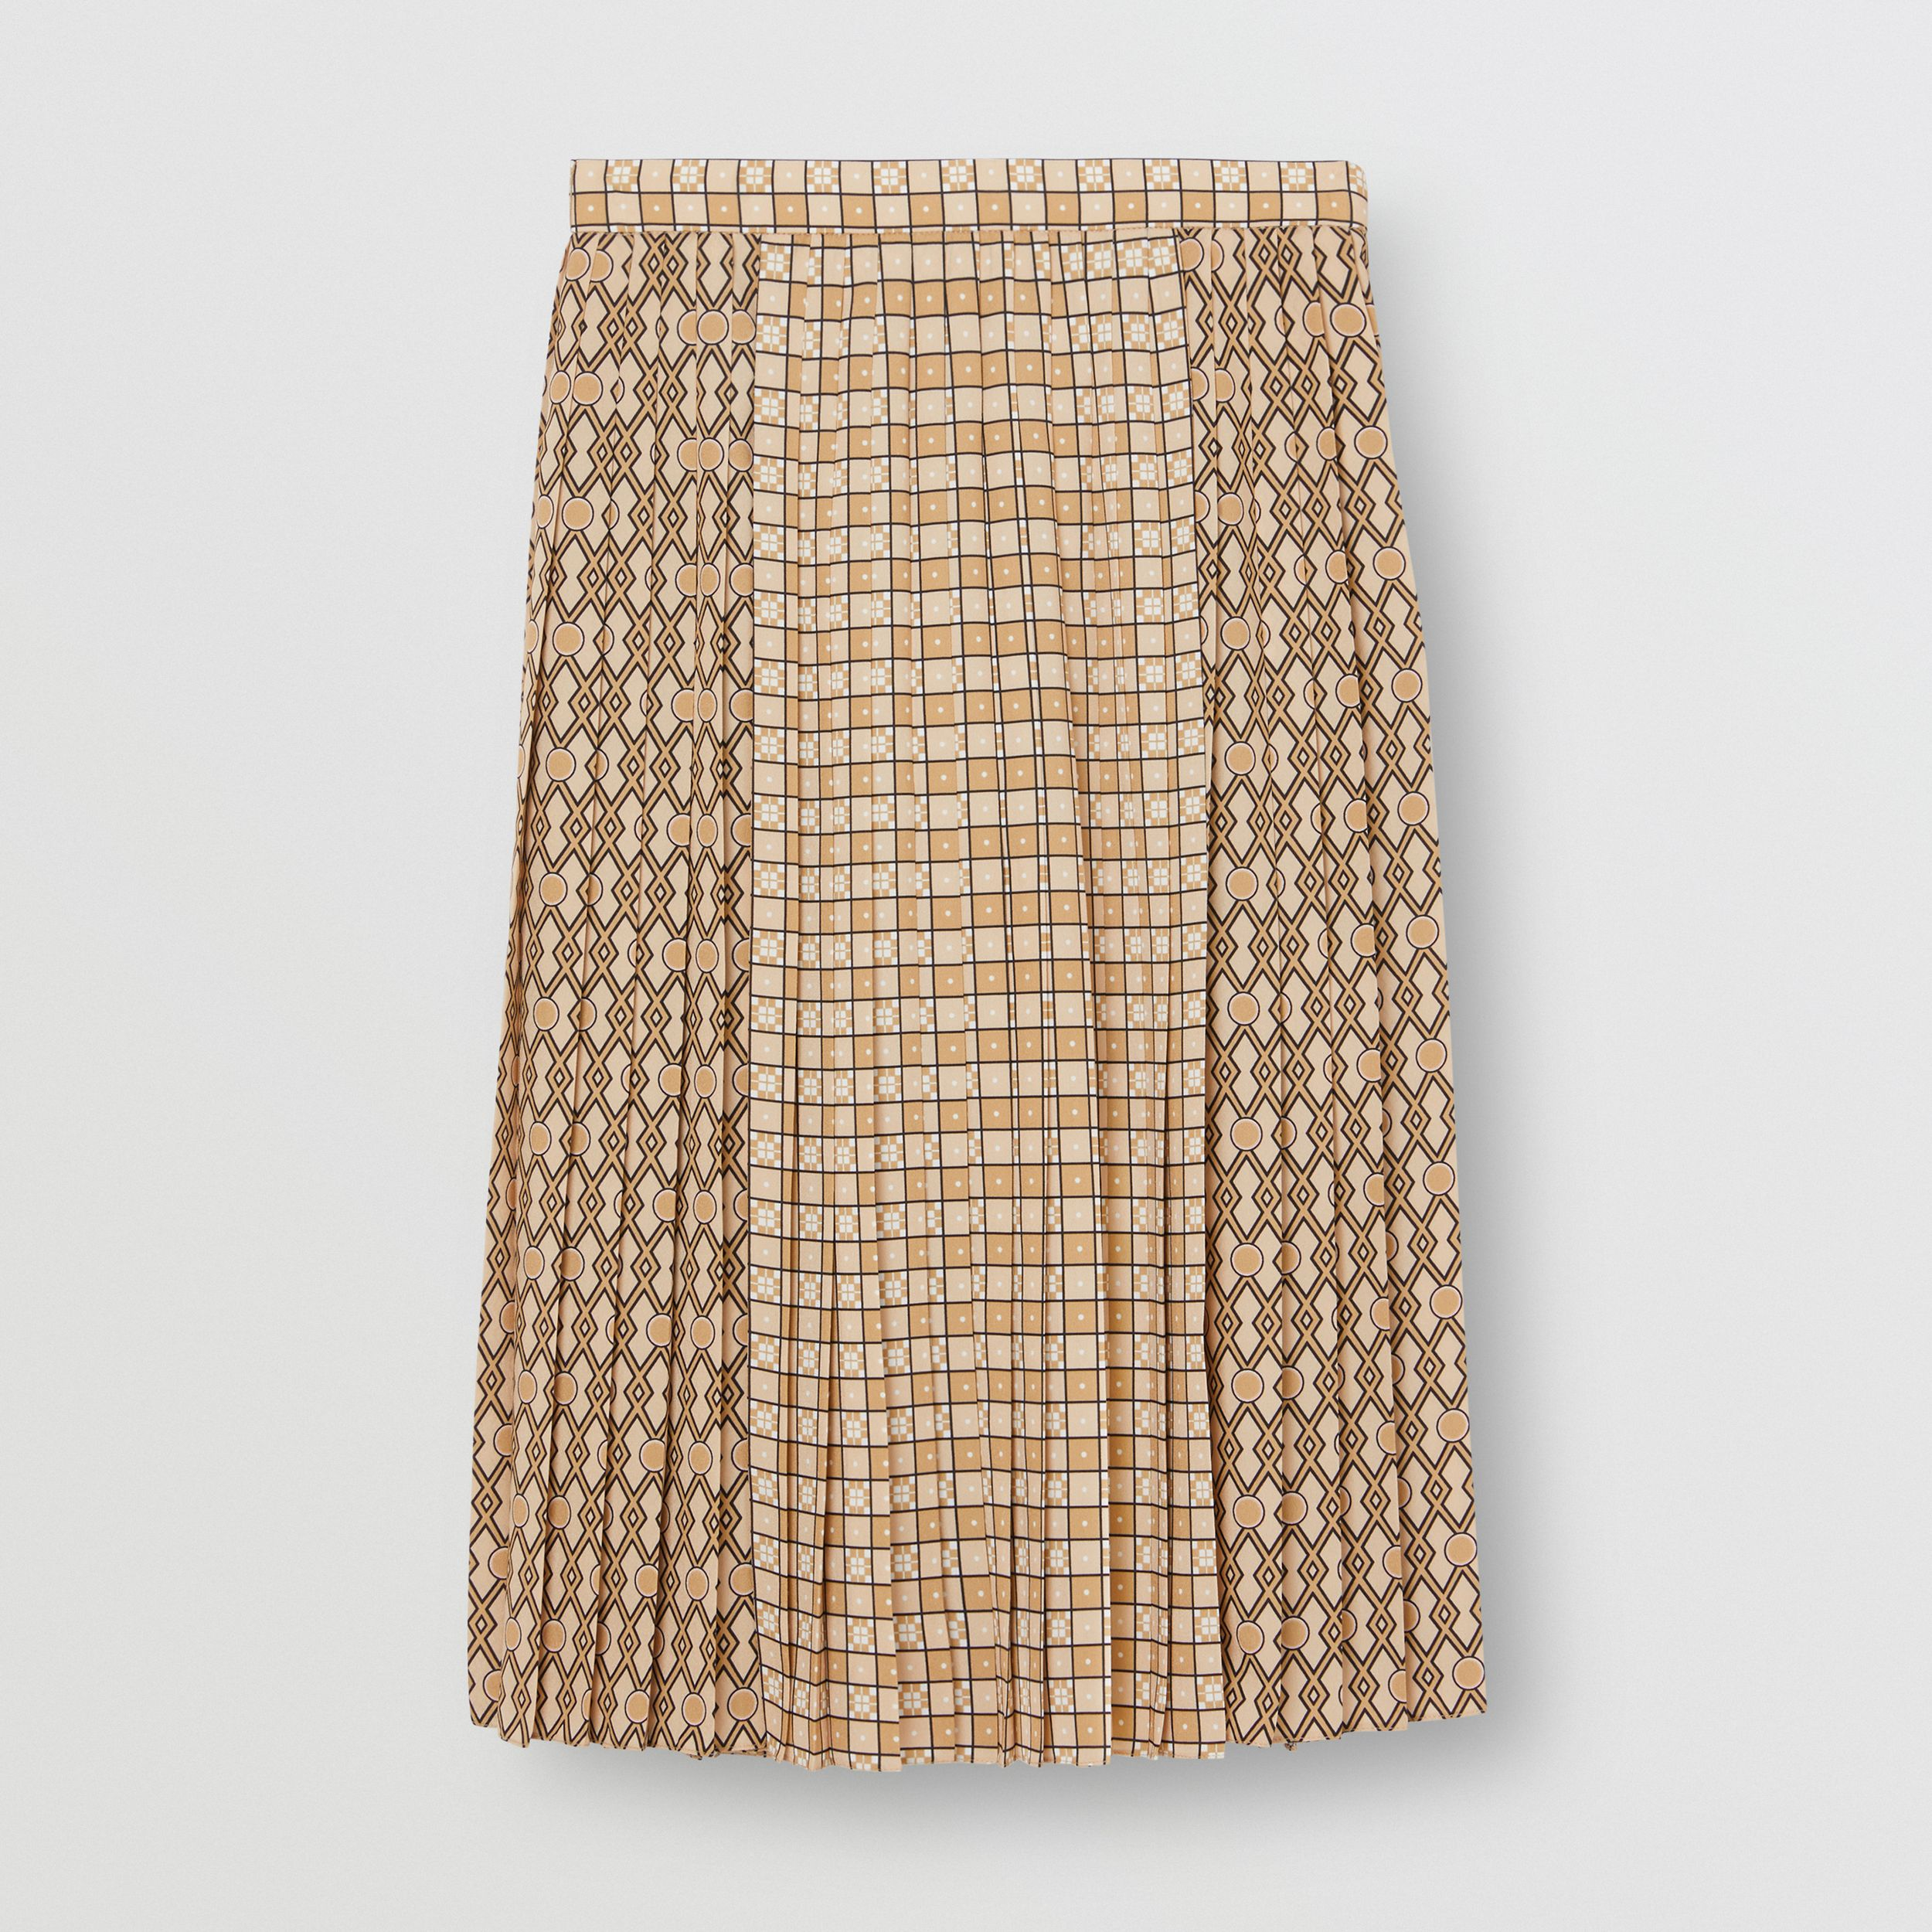 Contrast Graphic Print Pleated Skirt in Latte | Burberry Singapore - 4